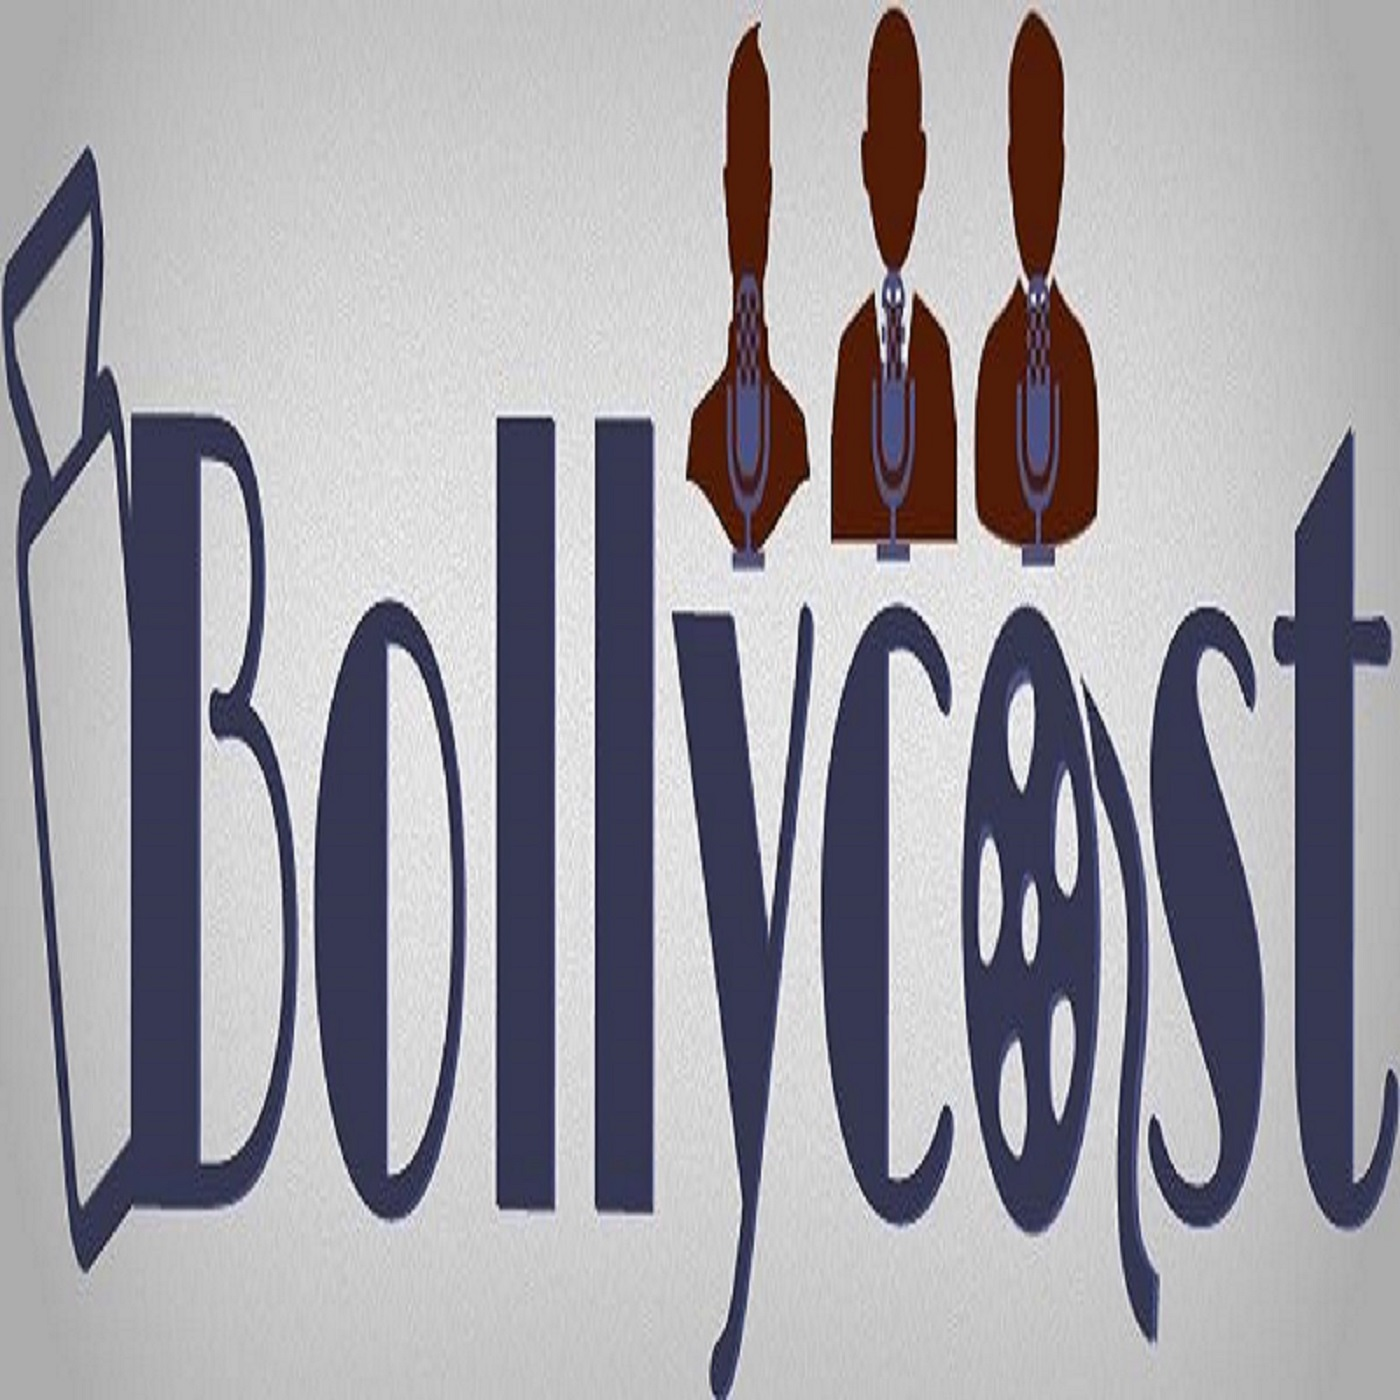 Bollycast: A Bollywood/Hollywood Podcast